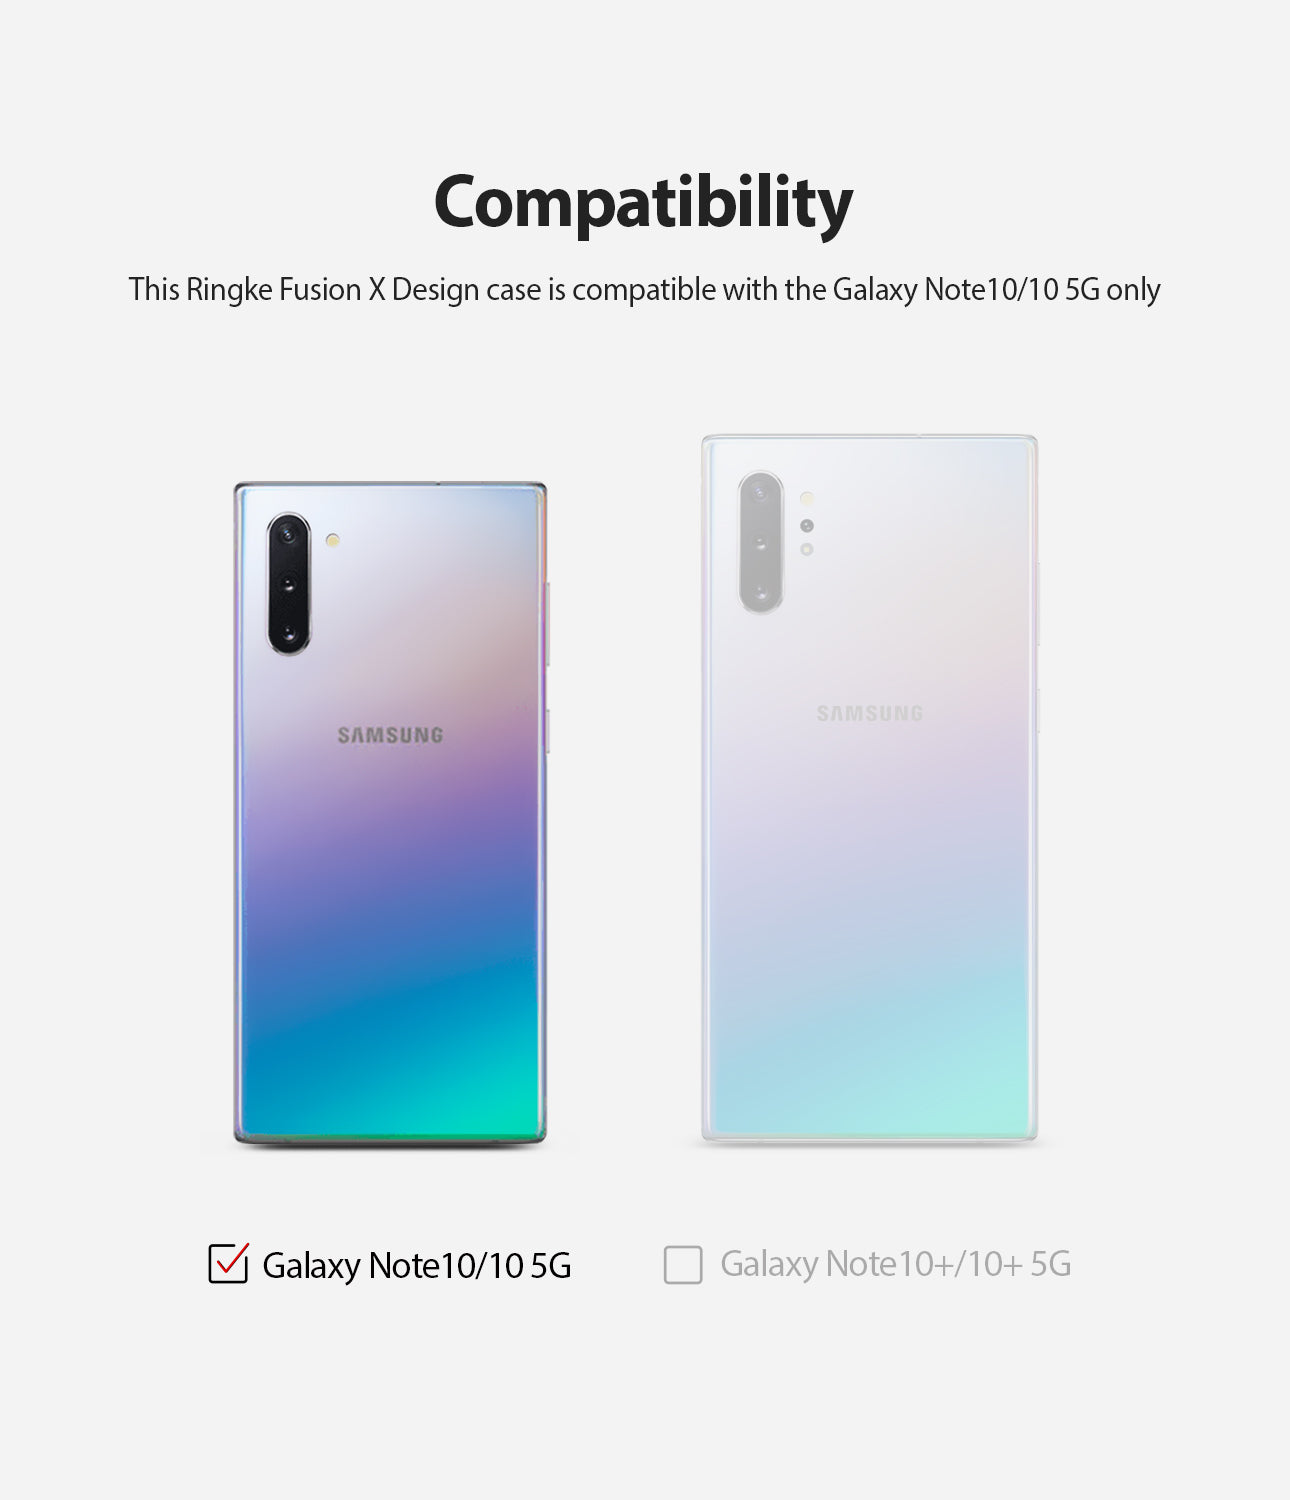 compatible only with galaxy note 10